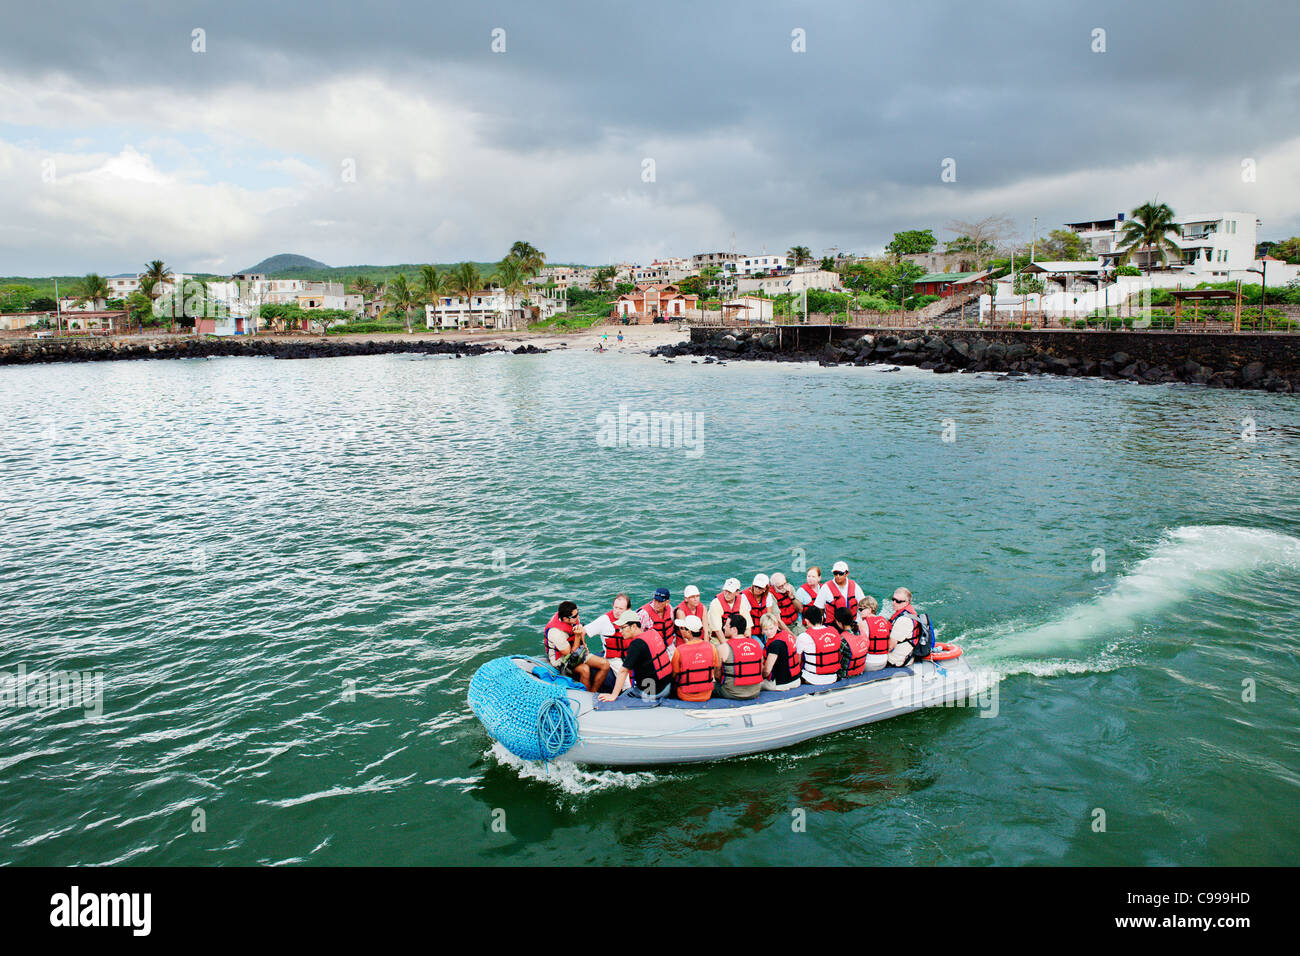 Dinghy takes tourist group back to cruise ship from Puerto Baquerizo Moreno town, San Christobal island, Galapagos, - Stock Image